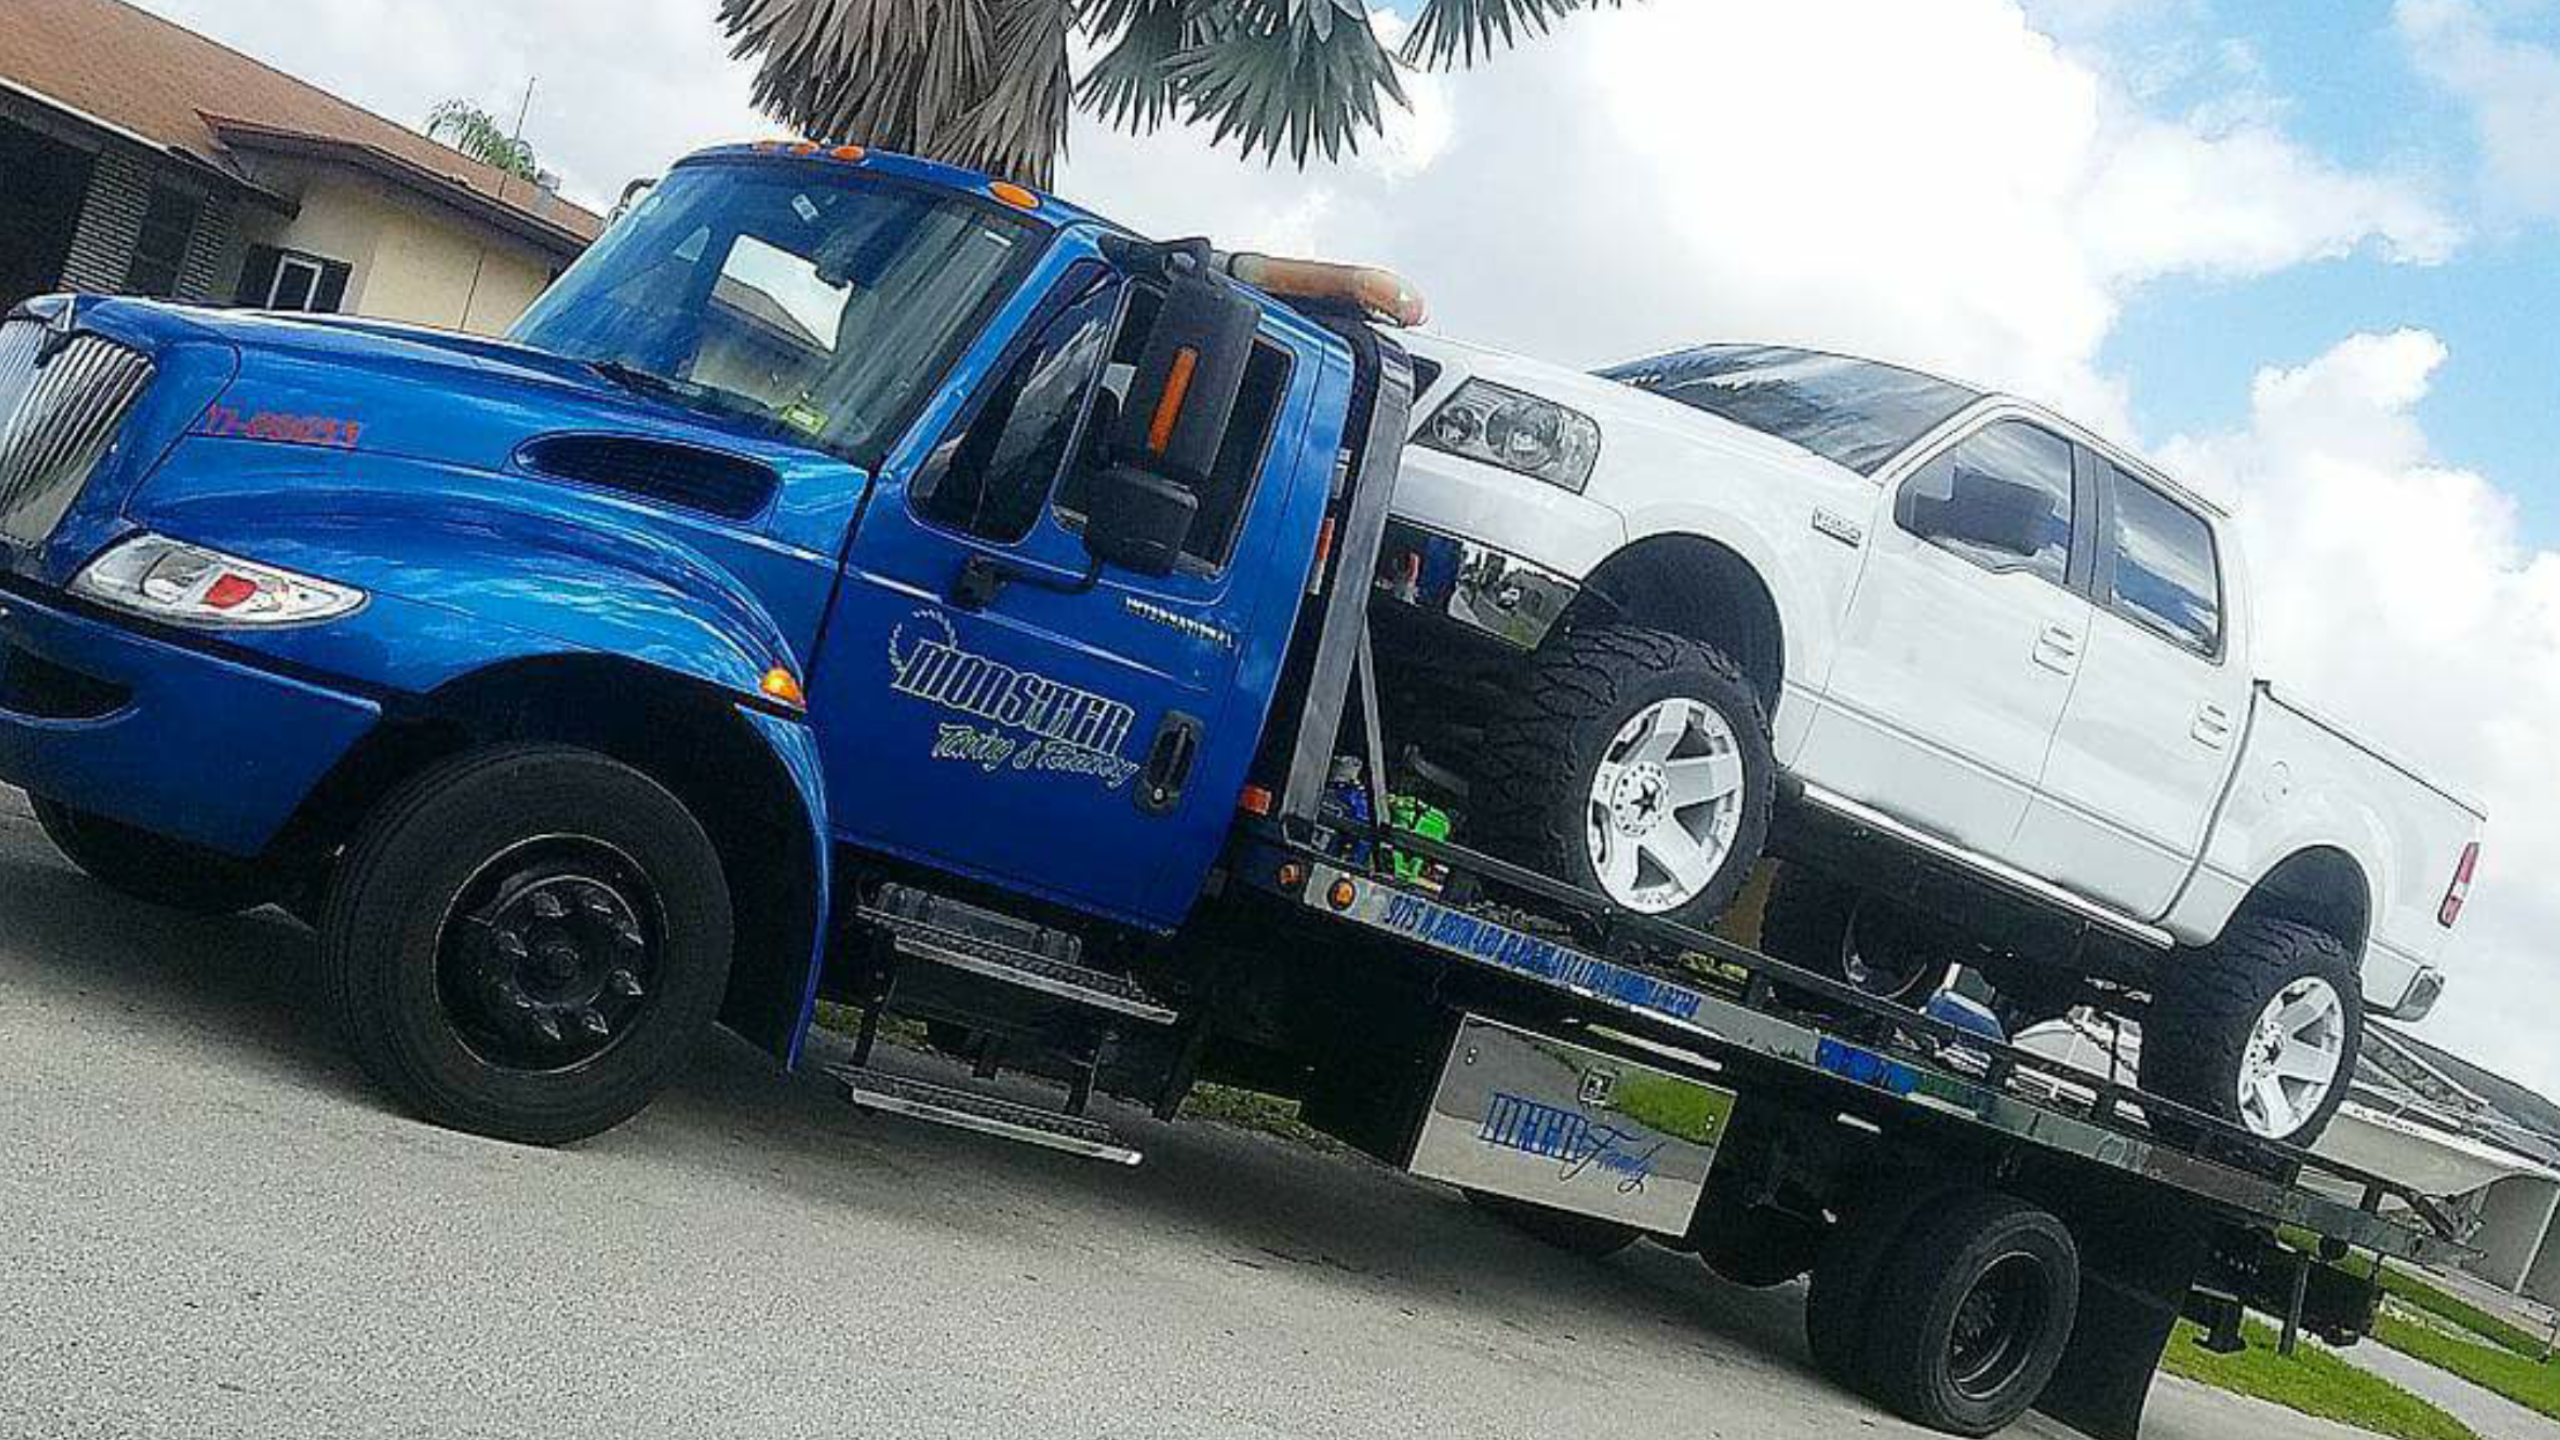 Broward 50 Towing >> Monster Towing & Recovery, Davie Florida (FL) - LocalDatabase.com